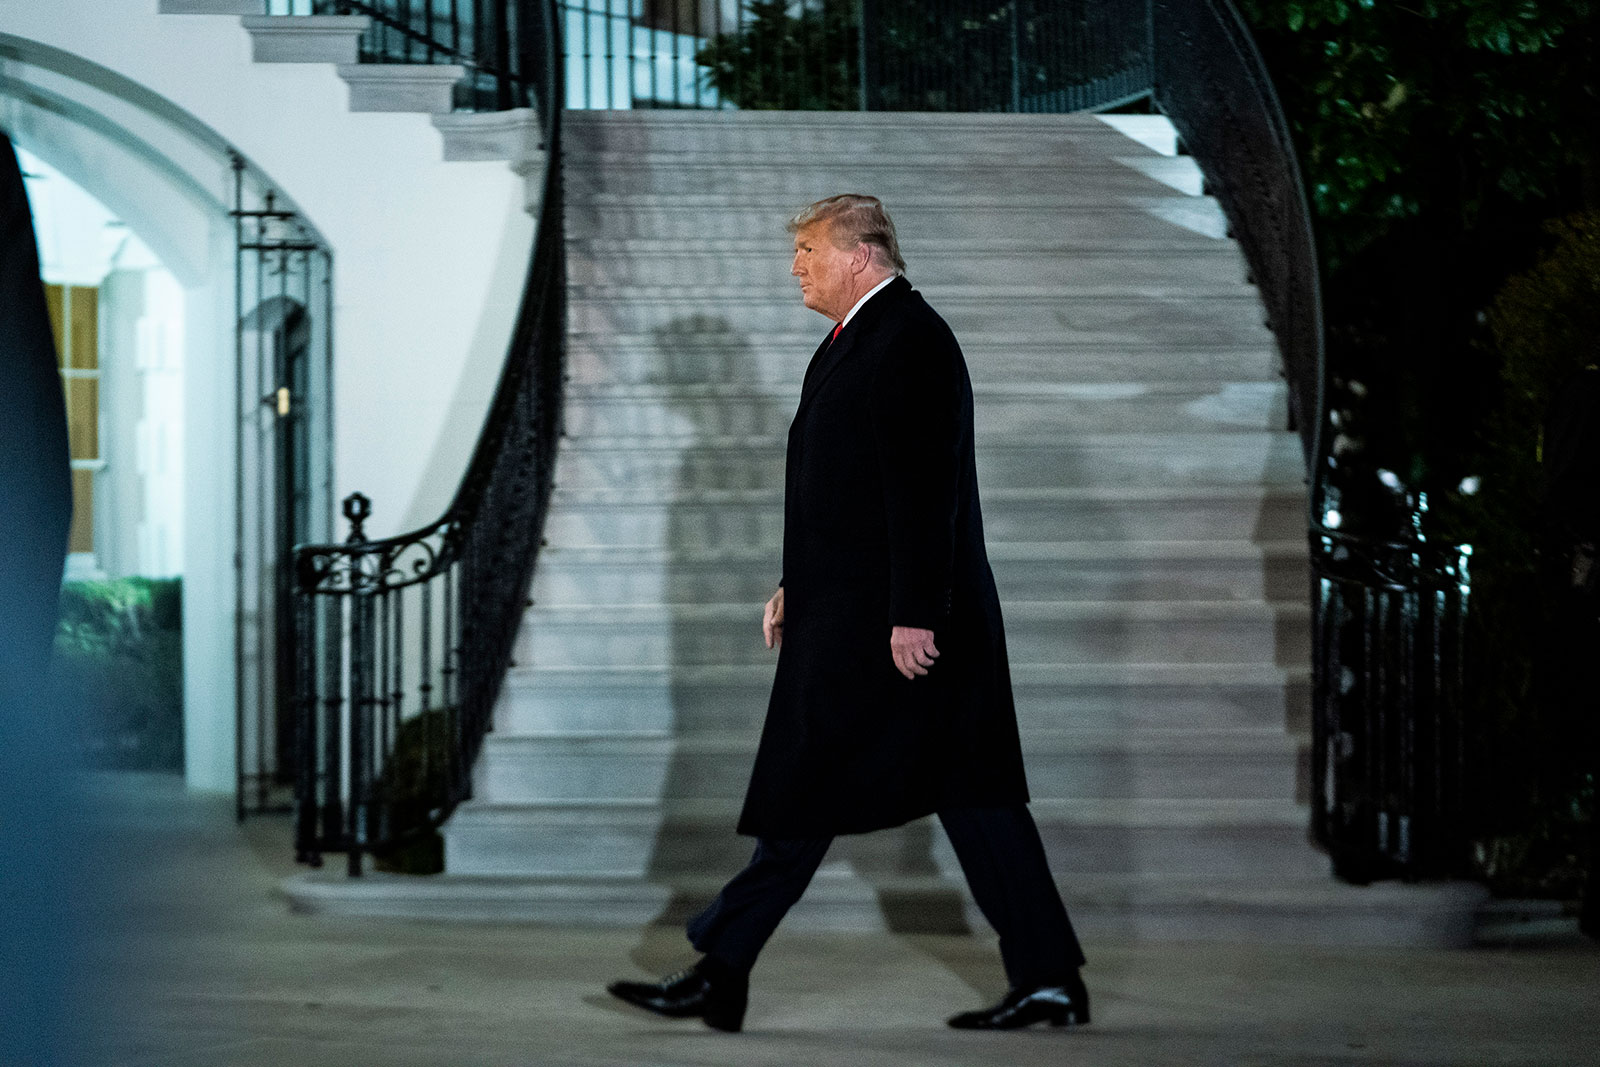 President Trump returns toSouth Lthe White House on Tuesday, Jan 12, 2021 in Washington, DC. (Photo by Jabin Botsford/The Washington Post via Getty Images)